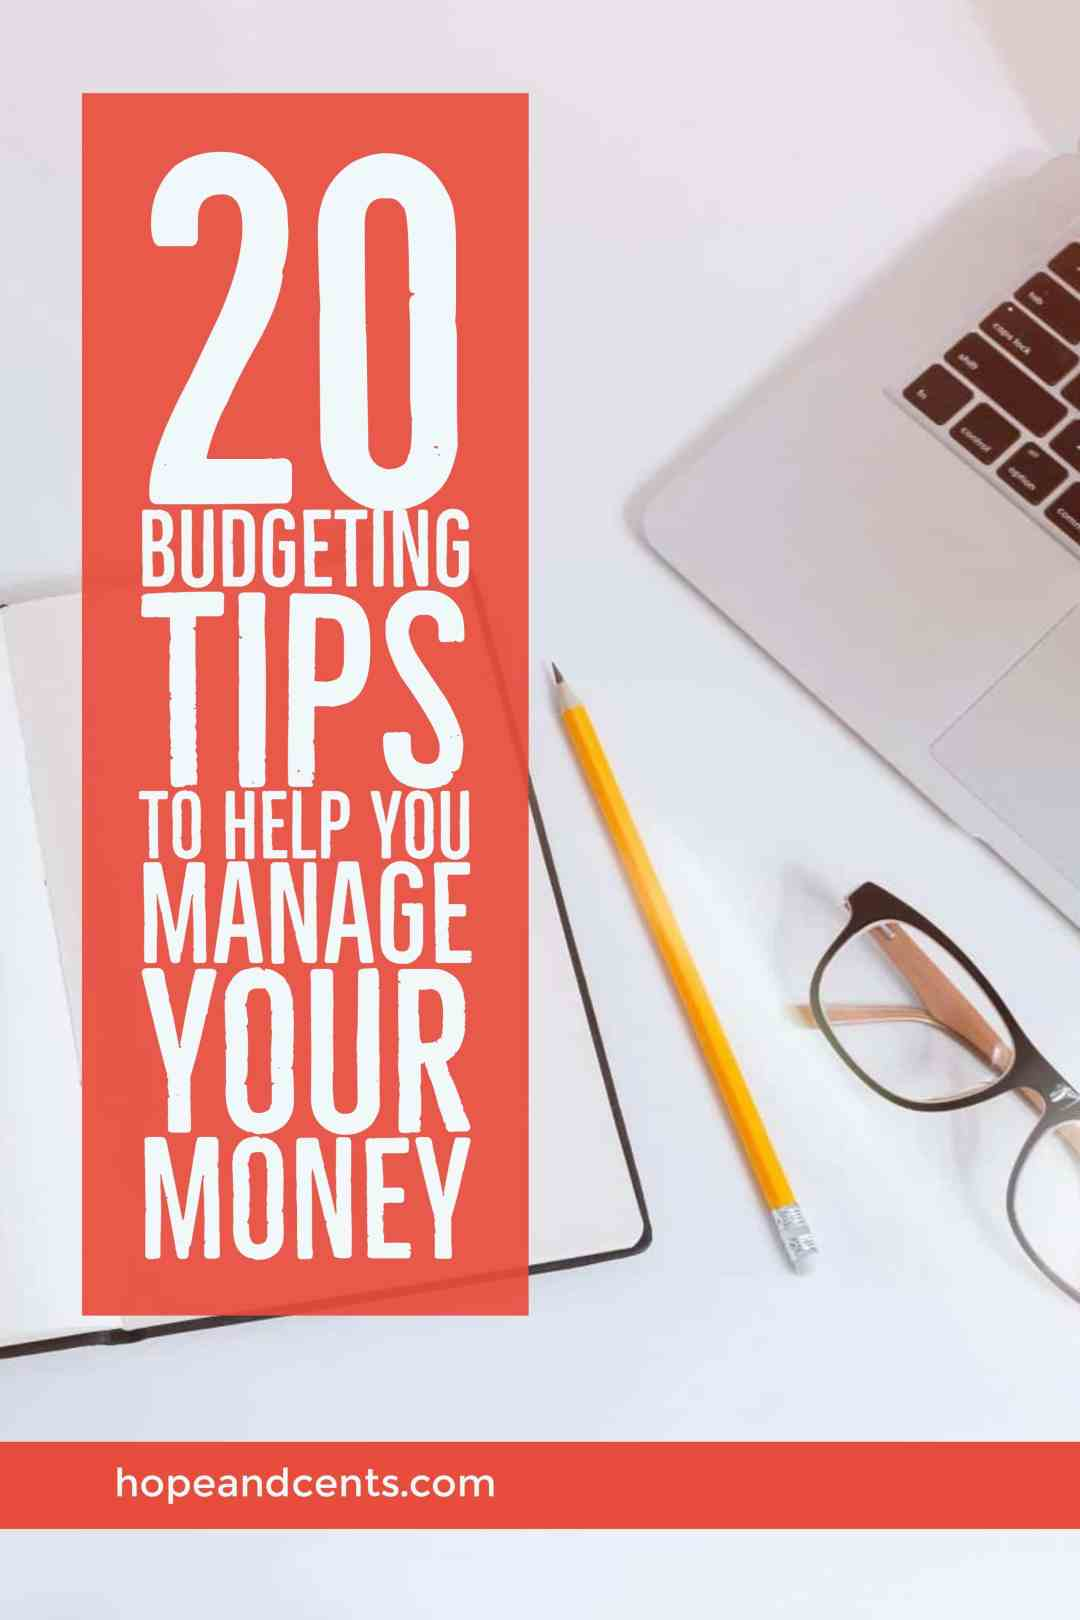 20 Budgeting Tips to Help You Manage Your Money